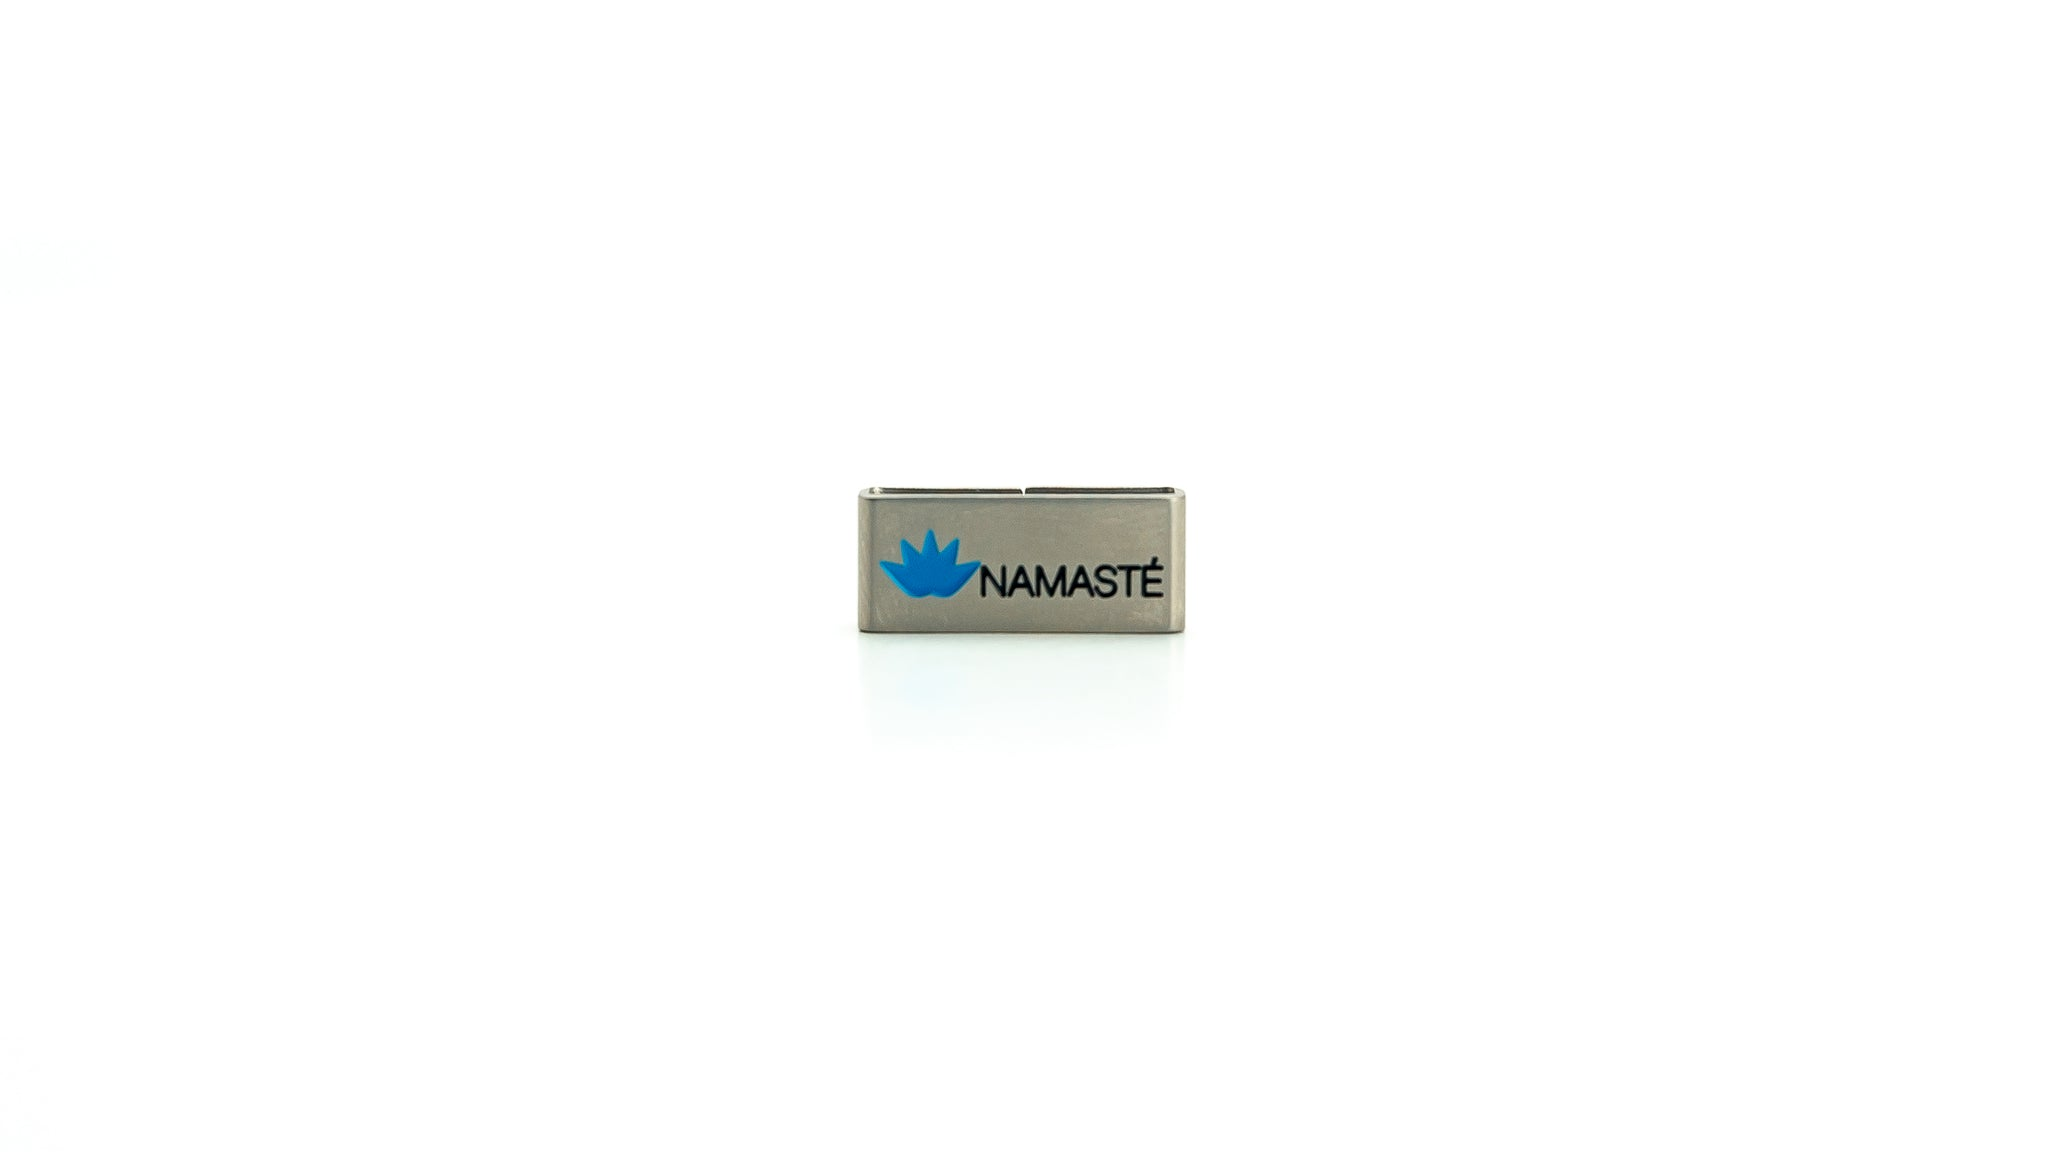 Namaste stainless steel tag.Yoga Accessories.  Stainless steel jewelry. Radtagz collectible charms.